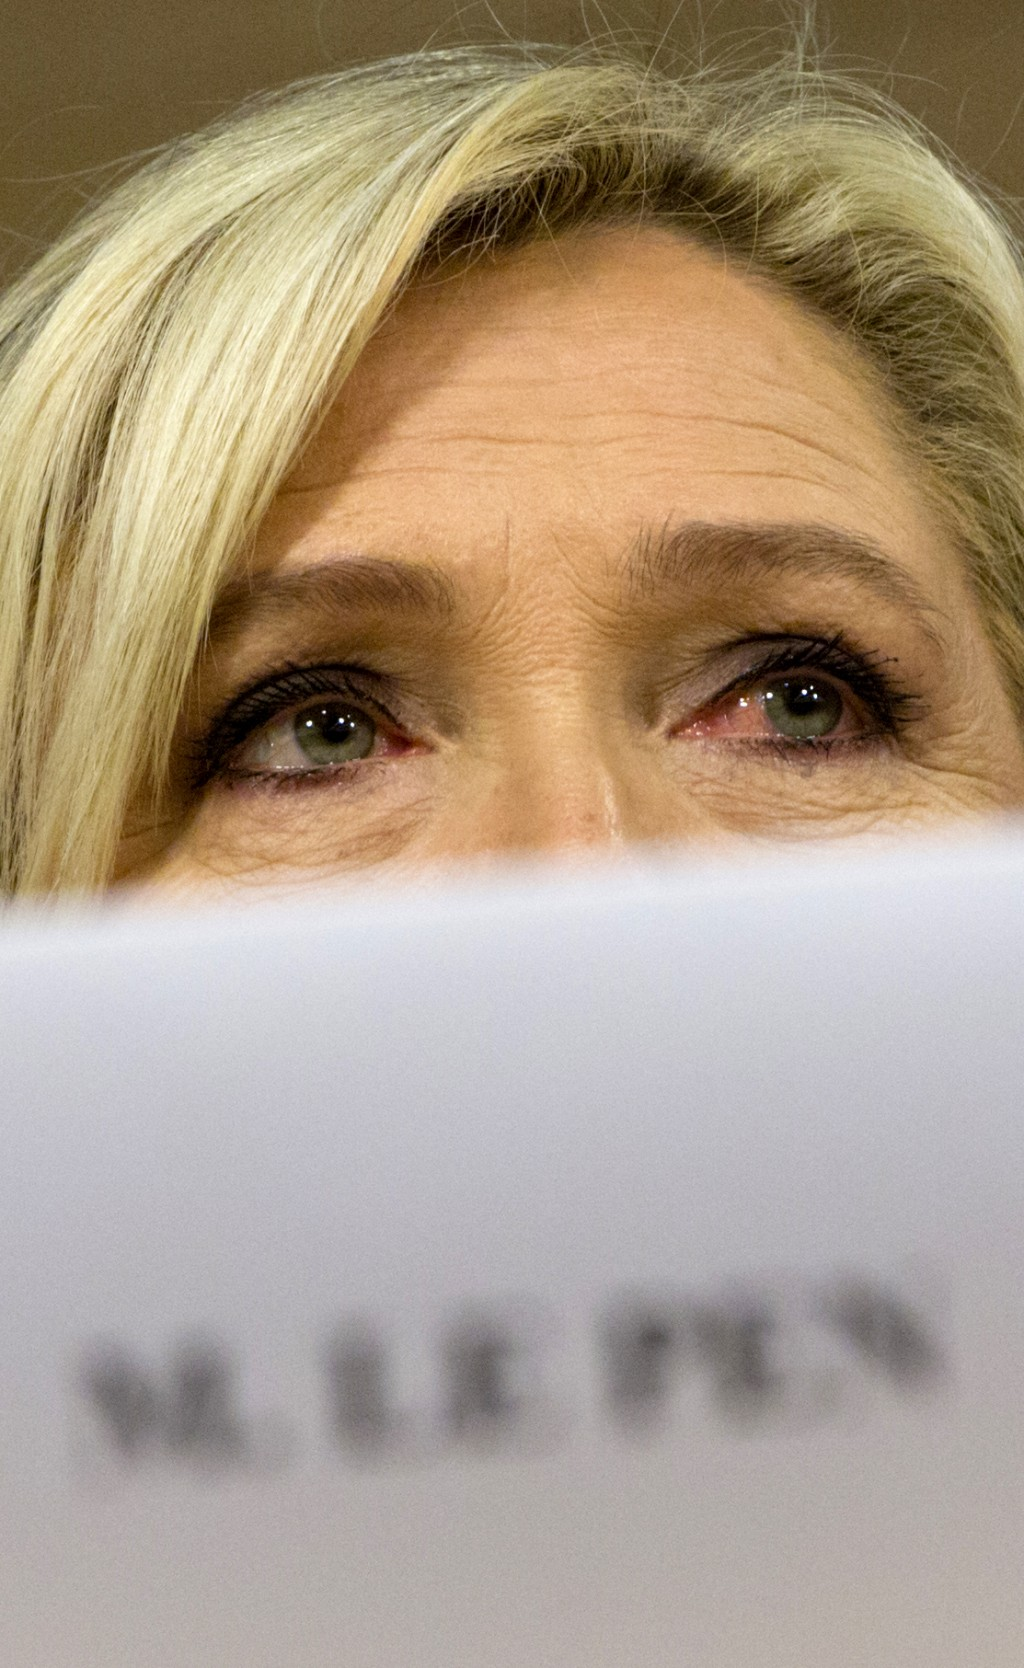 French far-right National Rally leader and MEP Marine Le Pen attends a media conference to announce the formation of a new far-right European Parliame